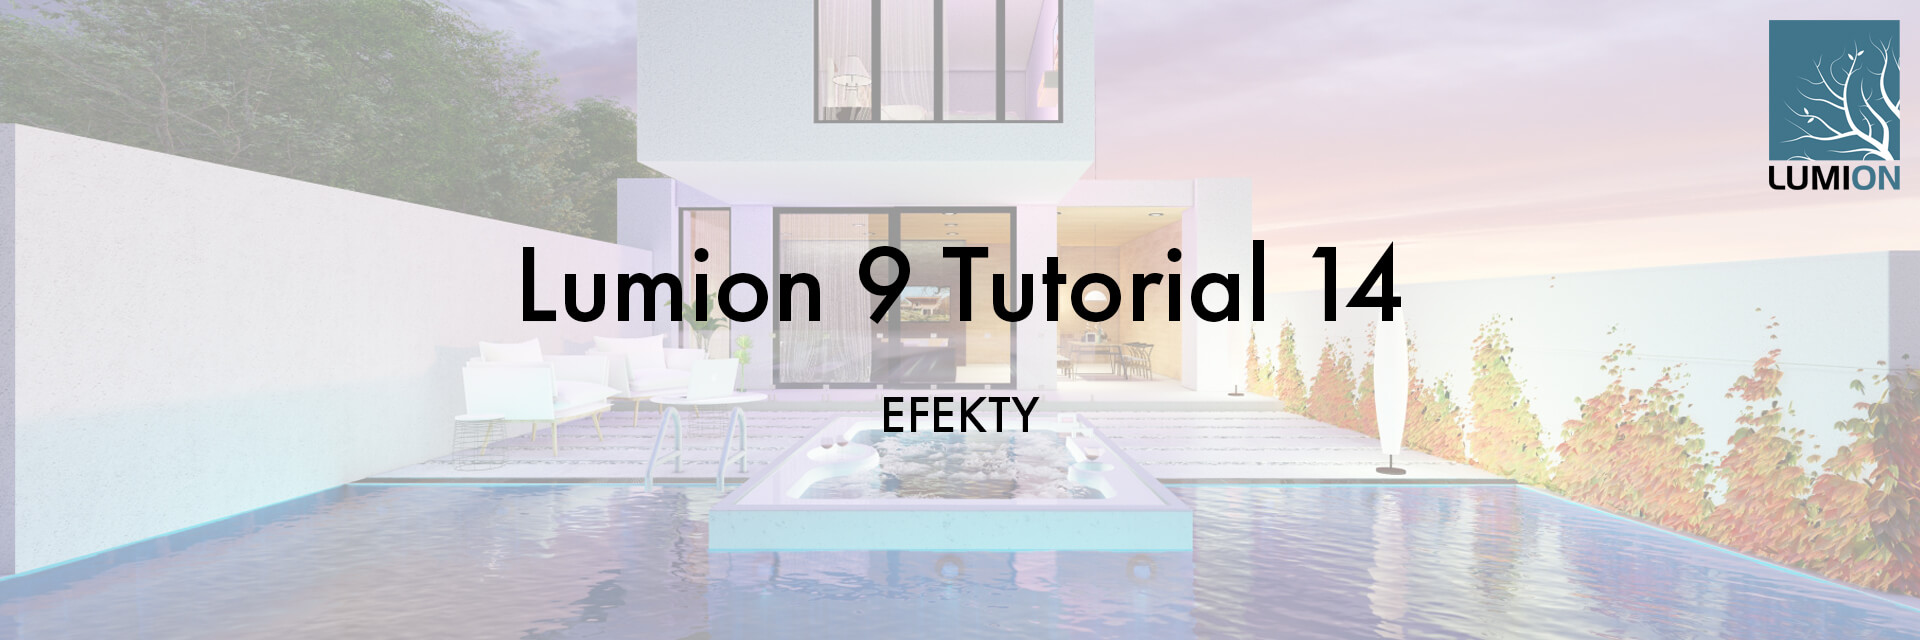 T14 ST 1 - Lumion 9 Tutorial 14 EFEKTY